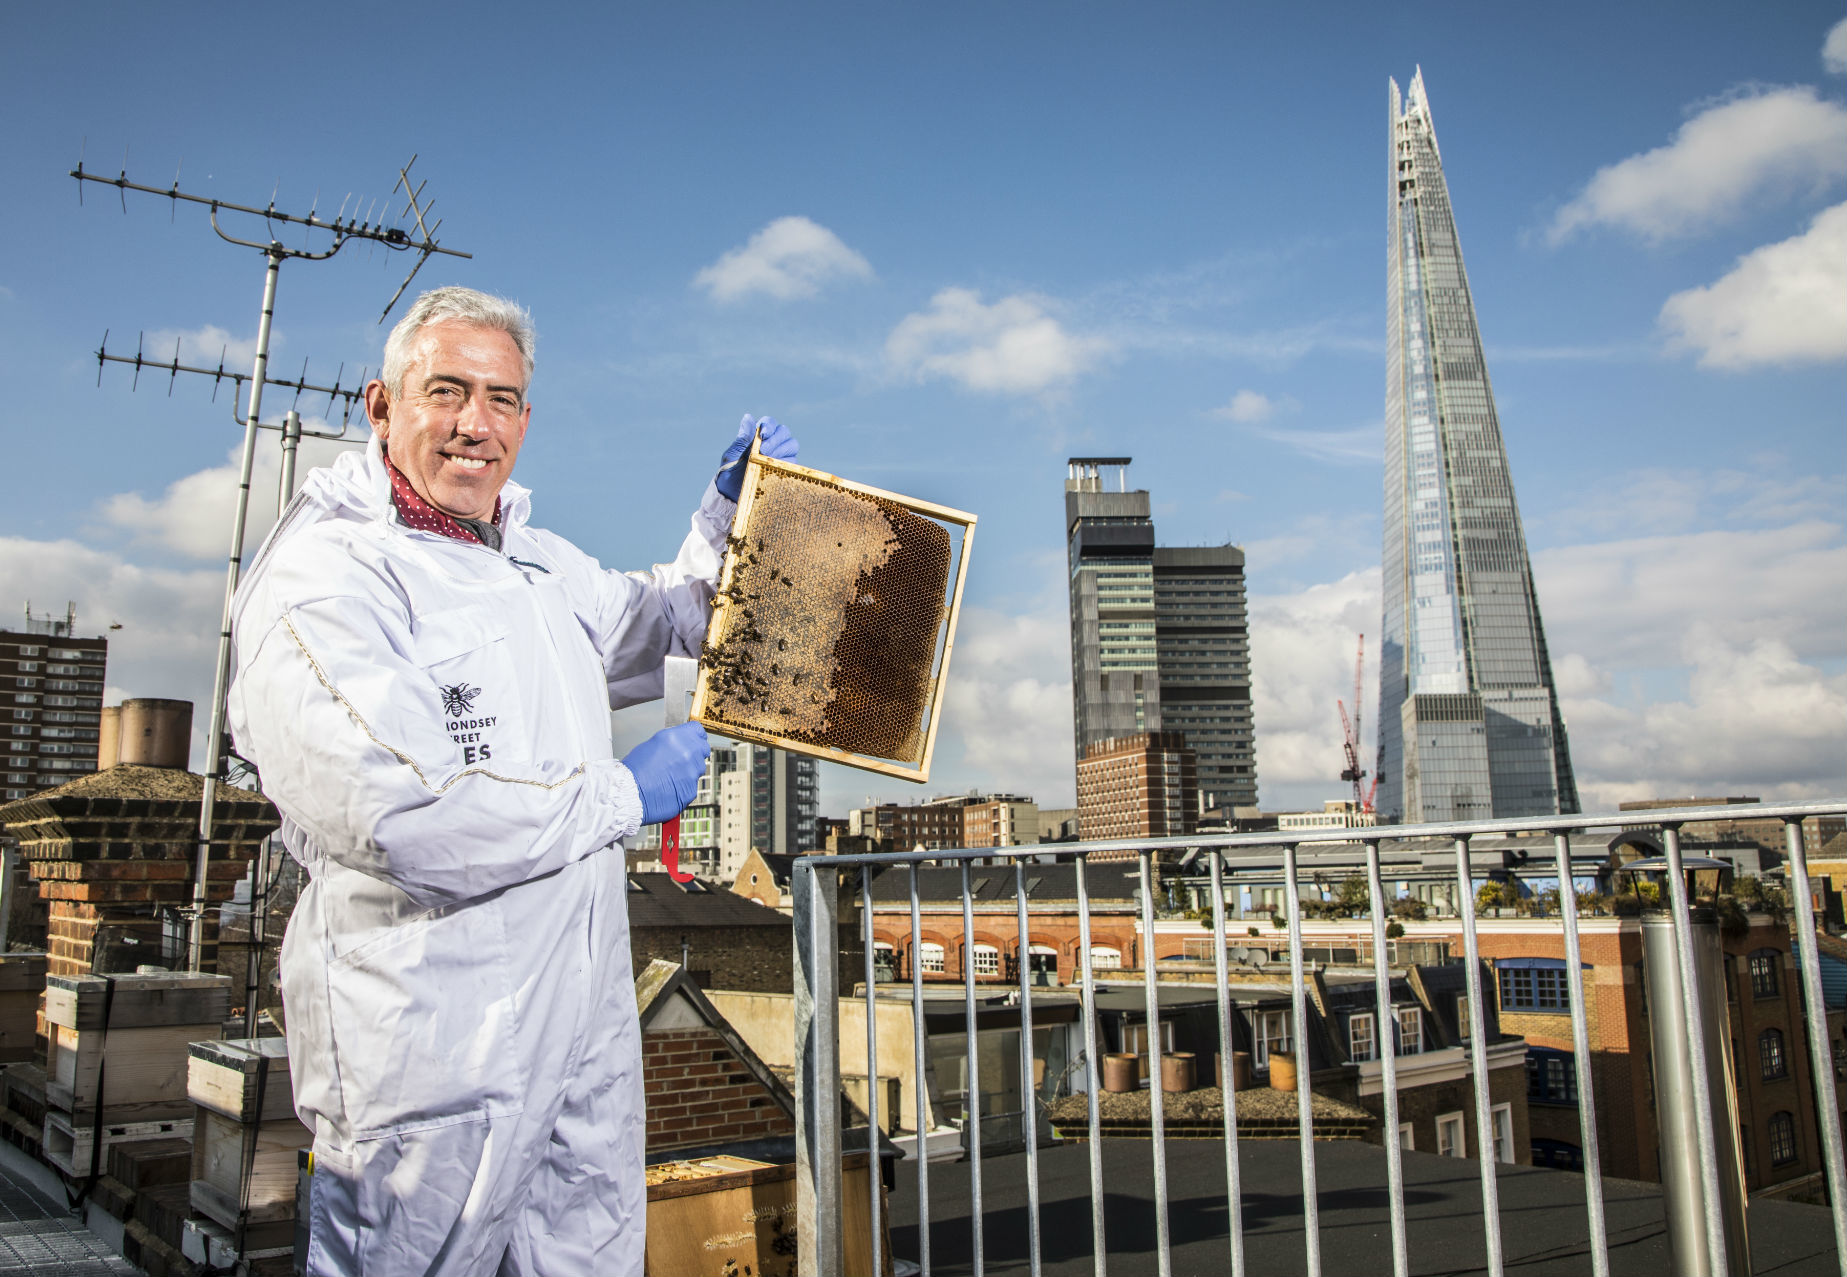 Things you only know if you're a London beekeeper